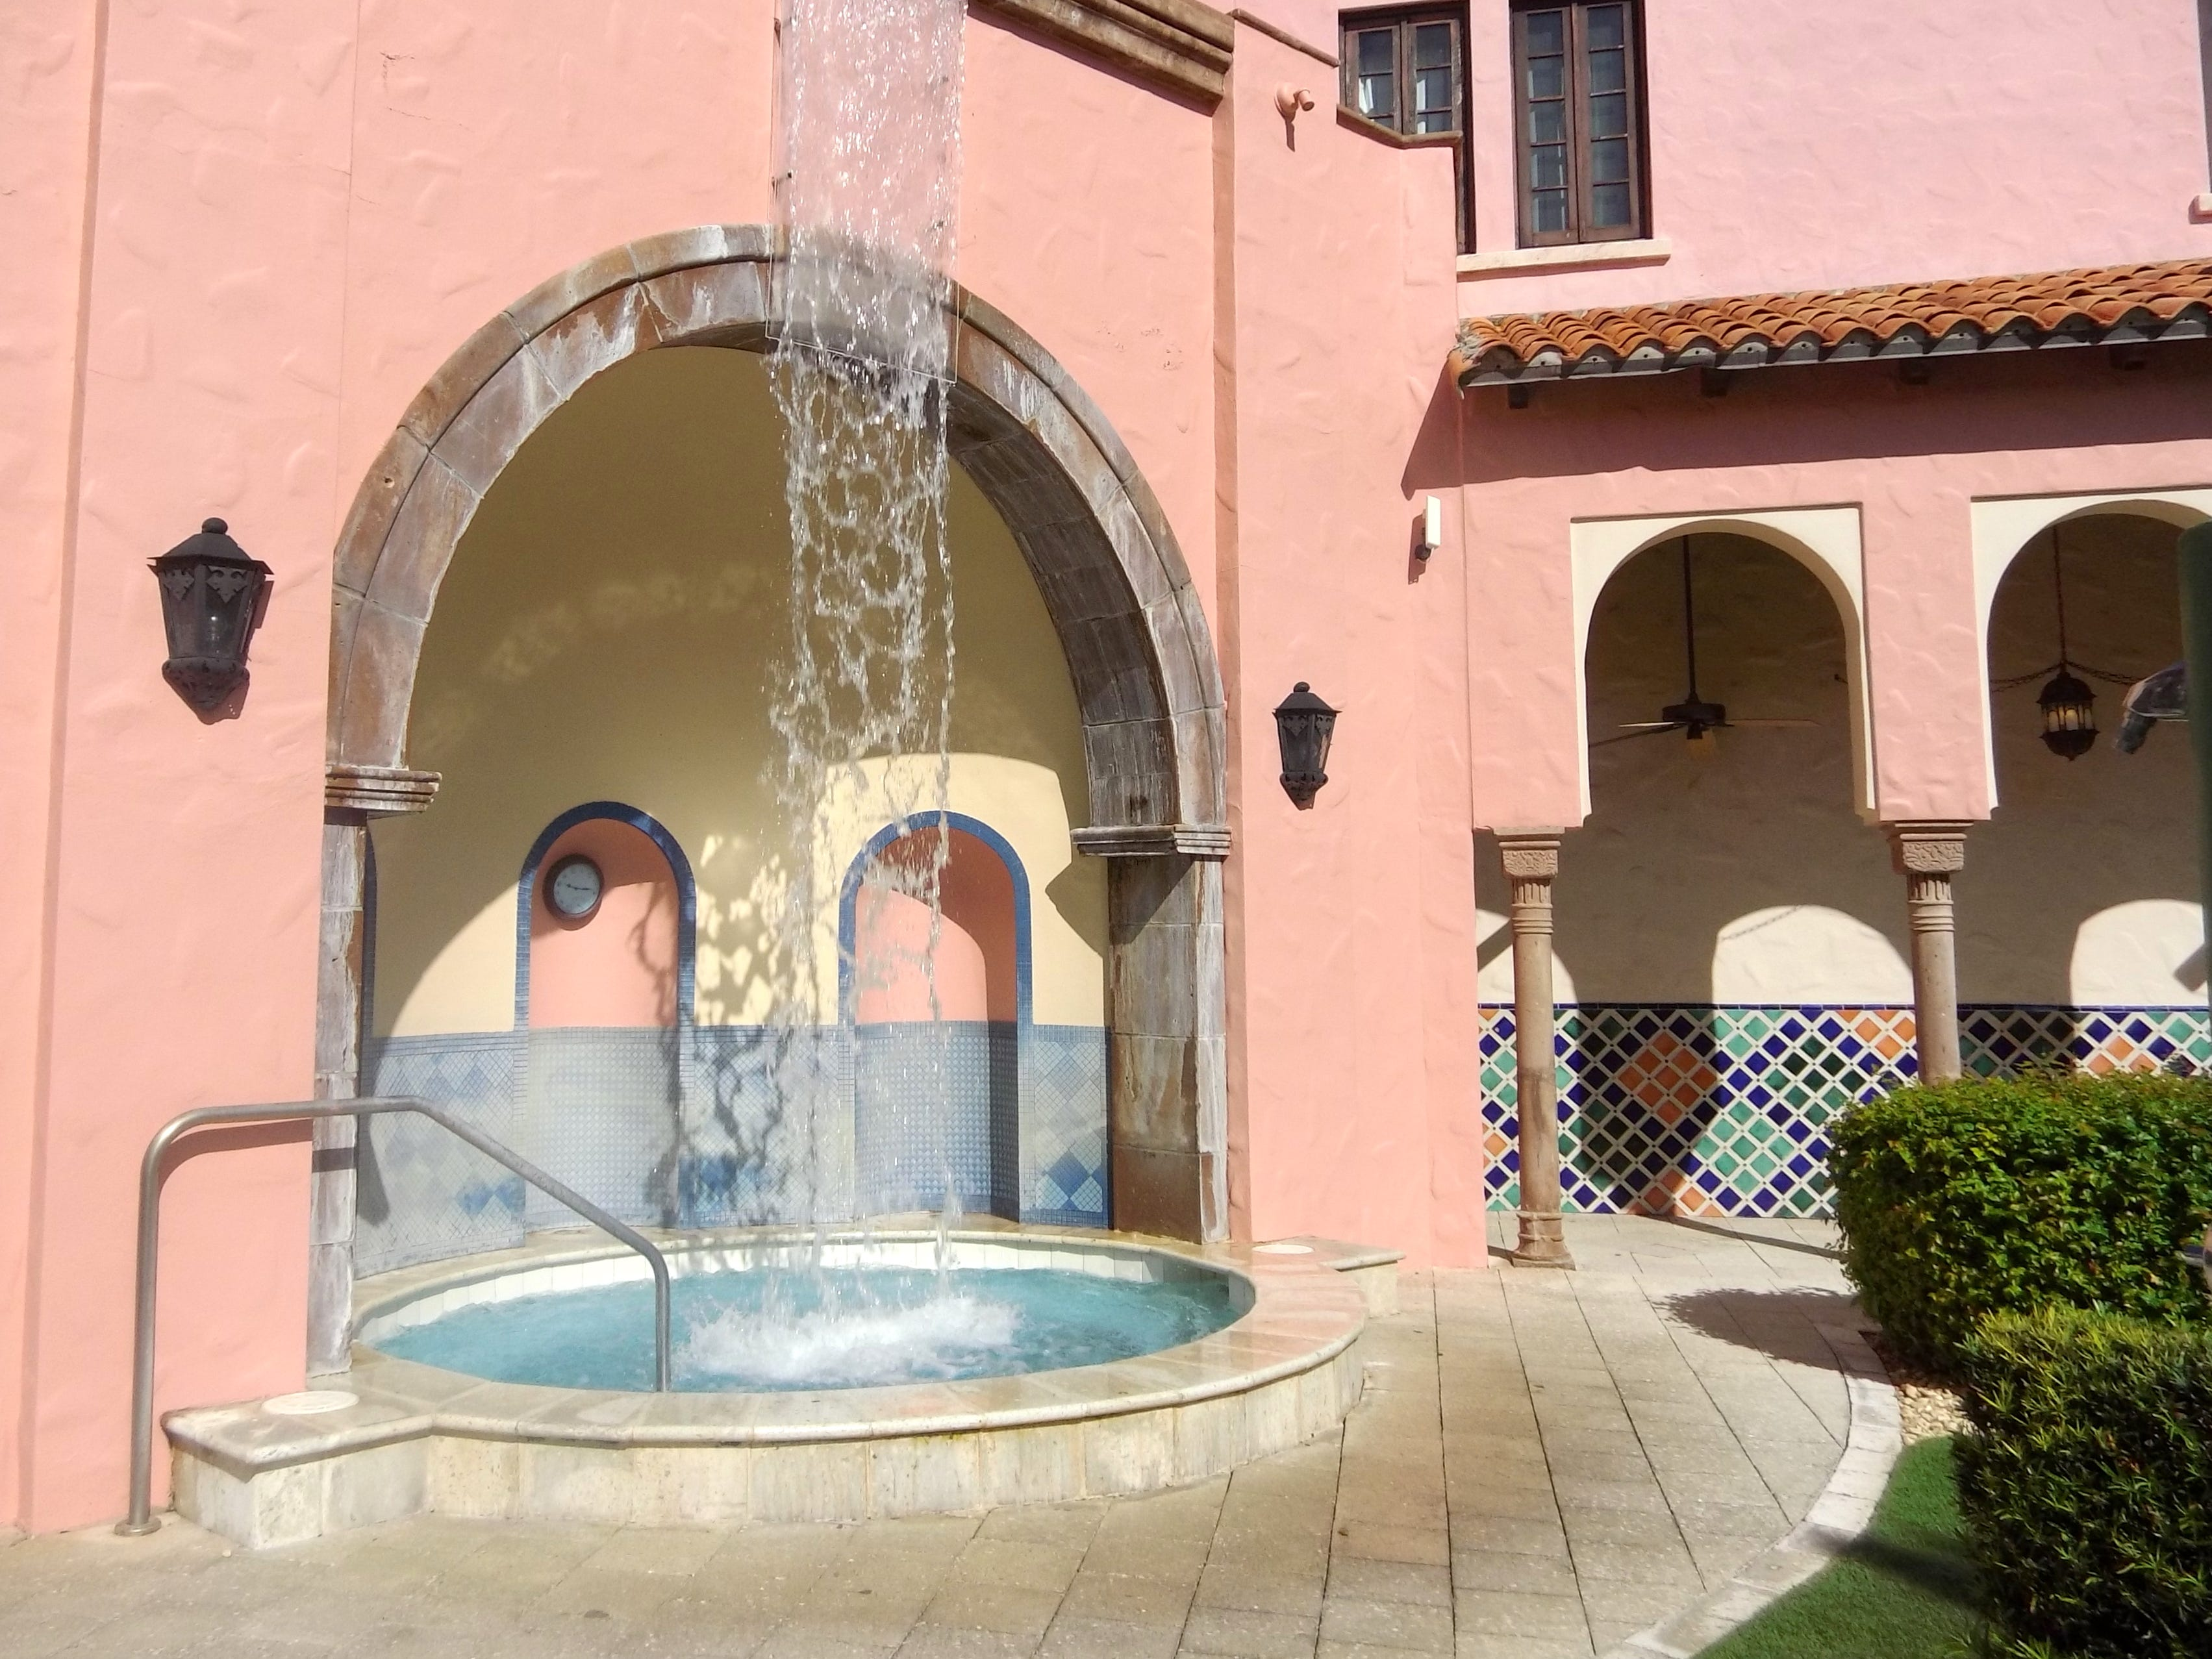 One of the outdoor hot tubs exclusively for guests of the Waldorf Astoria Spa.